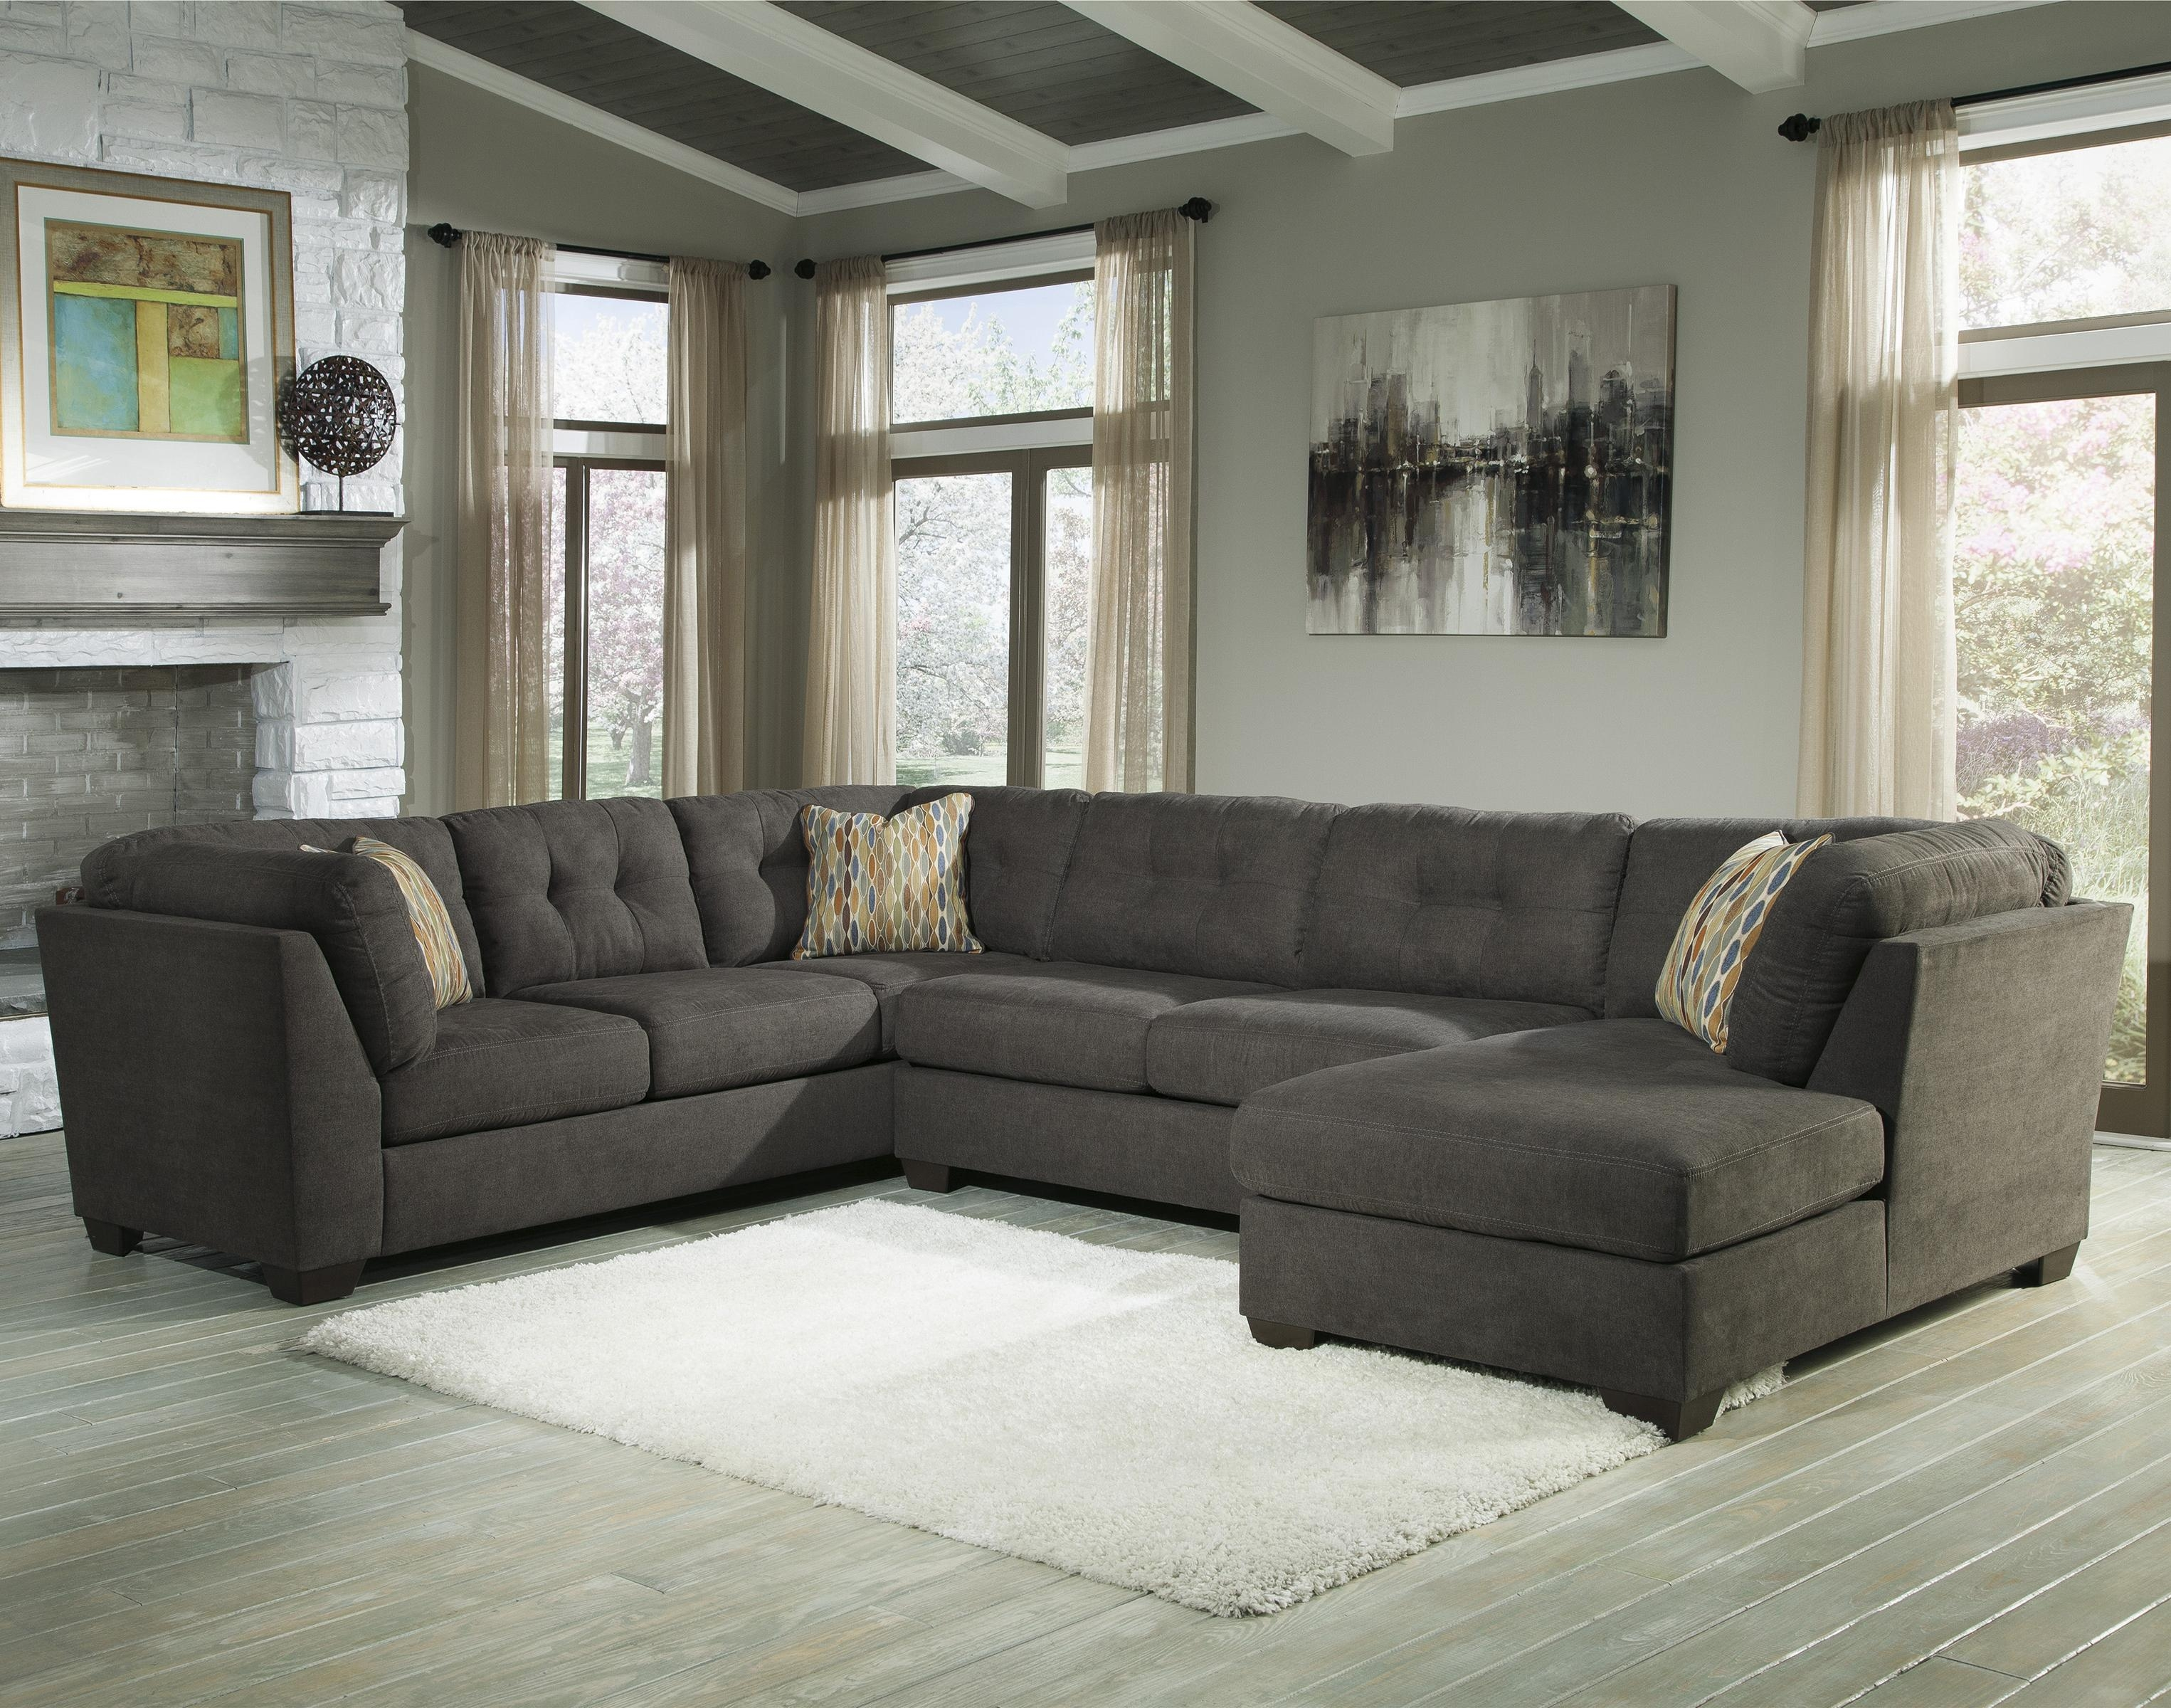 Benchcraft Delta City Steel 3 Piece Modular Sectional With Right With Regard To 3 Piece Sectional Sleeper Sofa (#3 of 12)